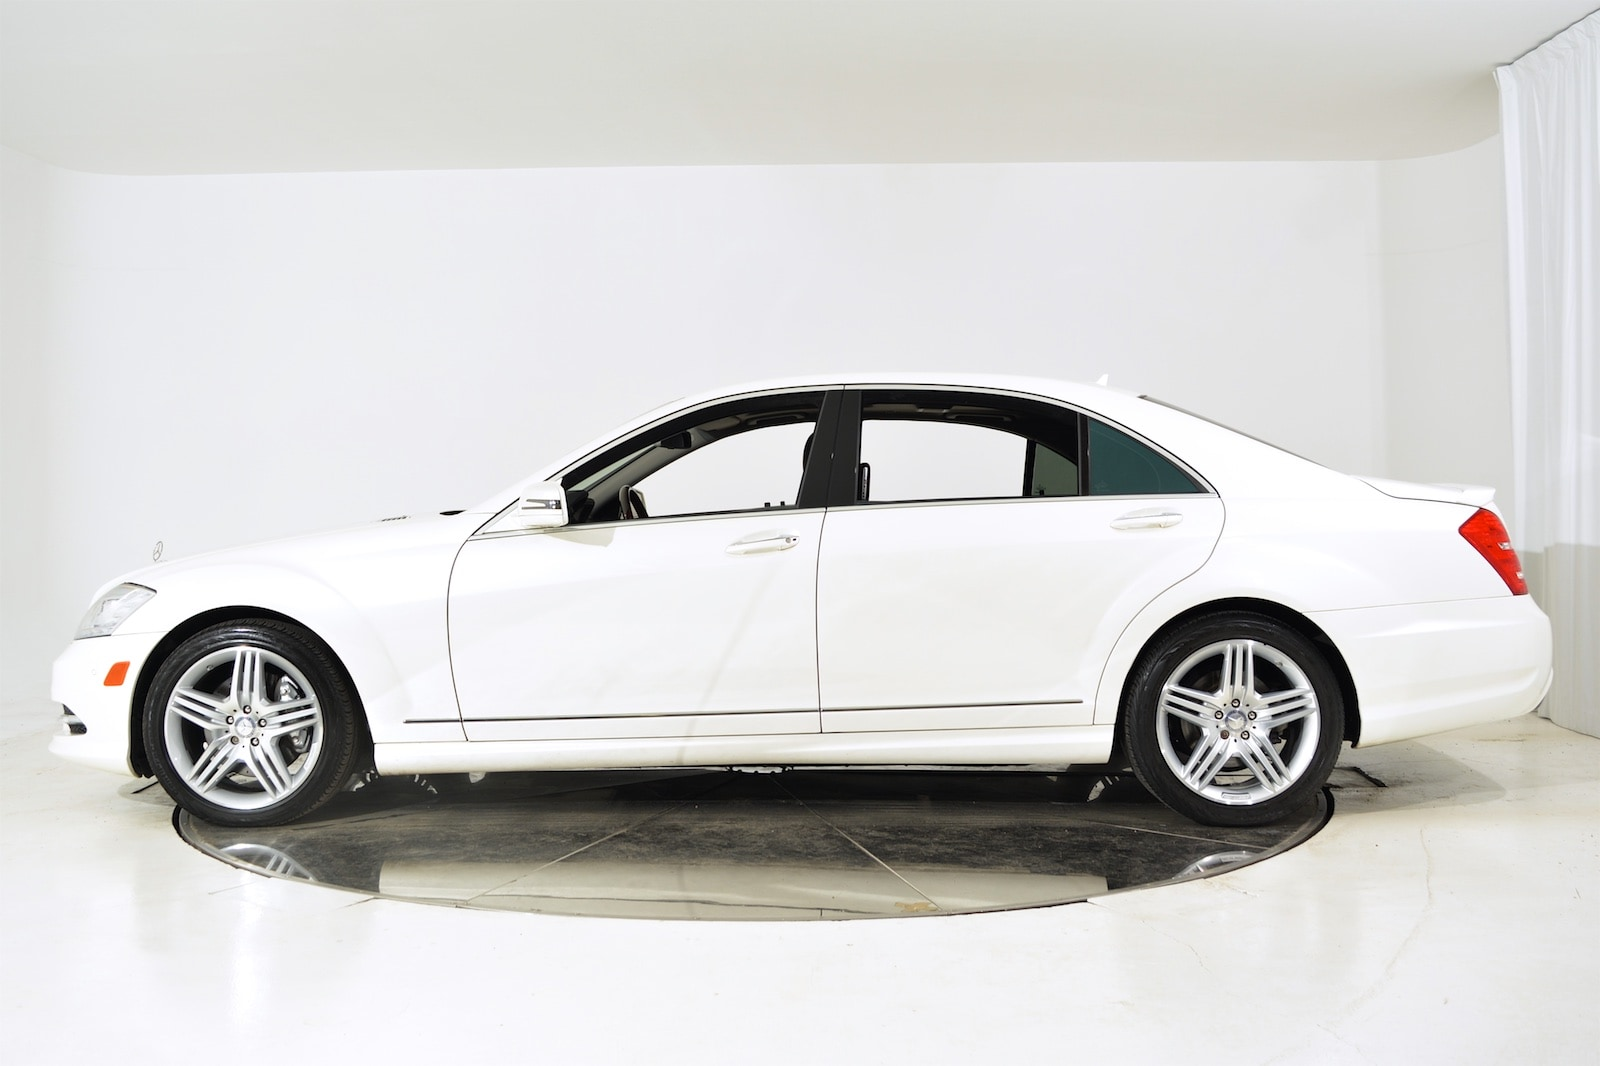 Used 2013 mercedes benz s550 for sale fort lauderdale fl for Mercedes benz of ft lauderdale fort lauderdale fl